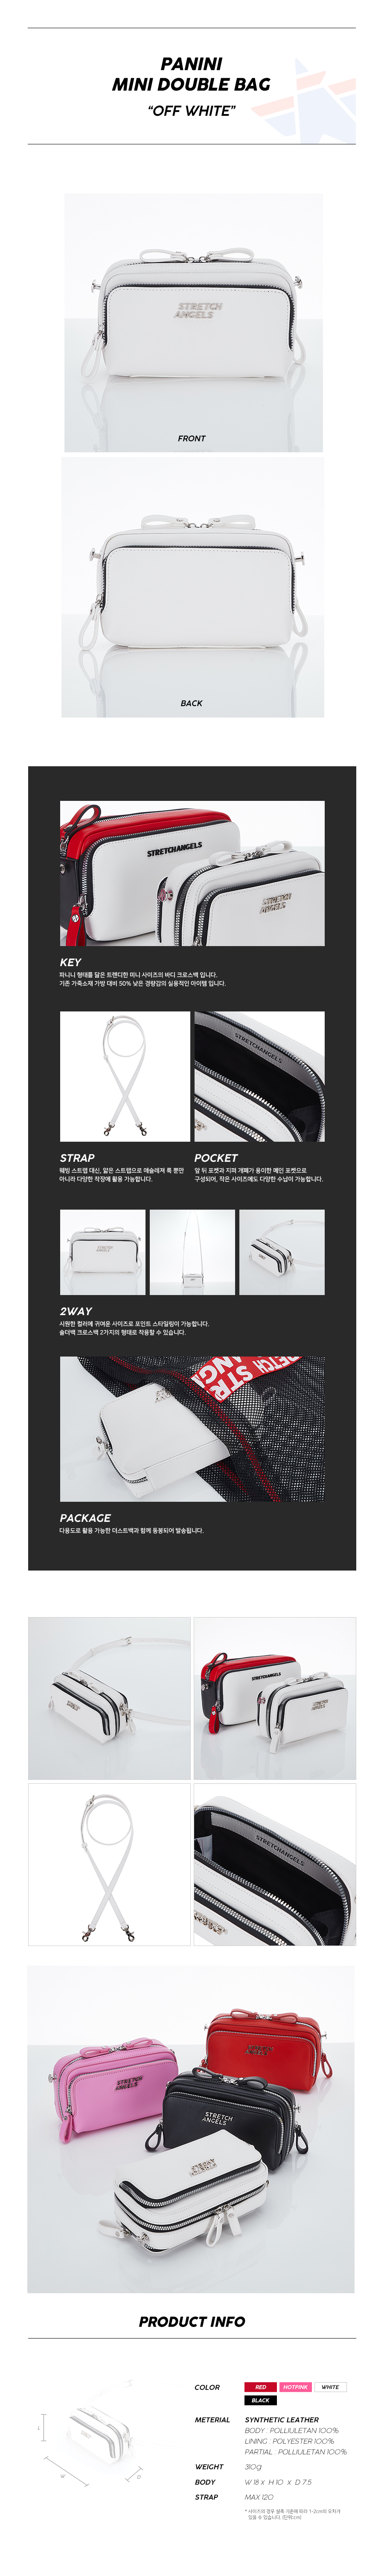 스트레치 엔젤스(STRETCH ANGELS) [파니니백]PANINI mini double bag (Off white)